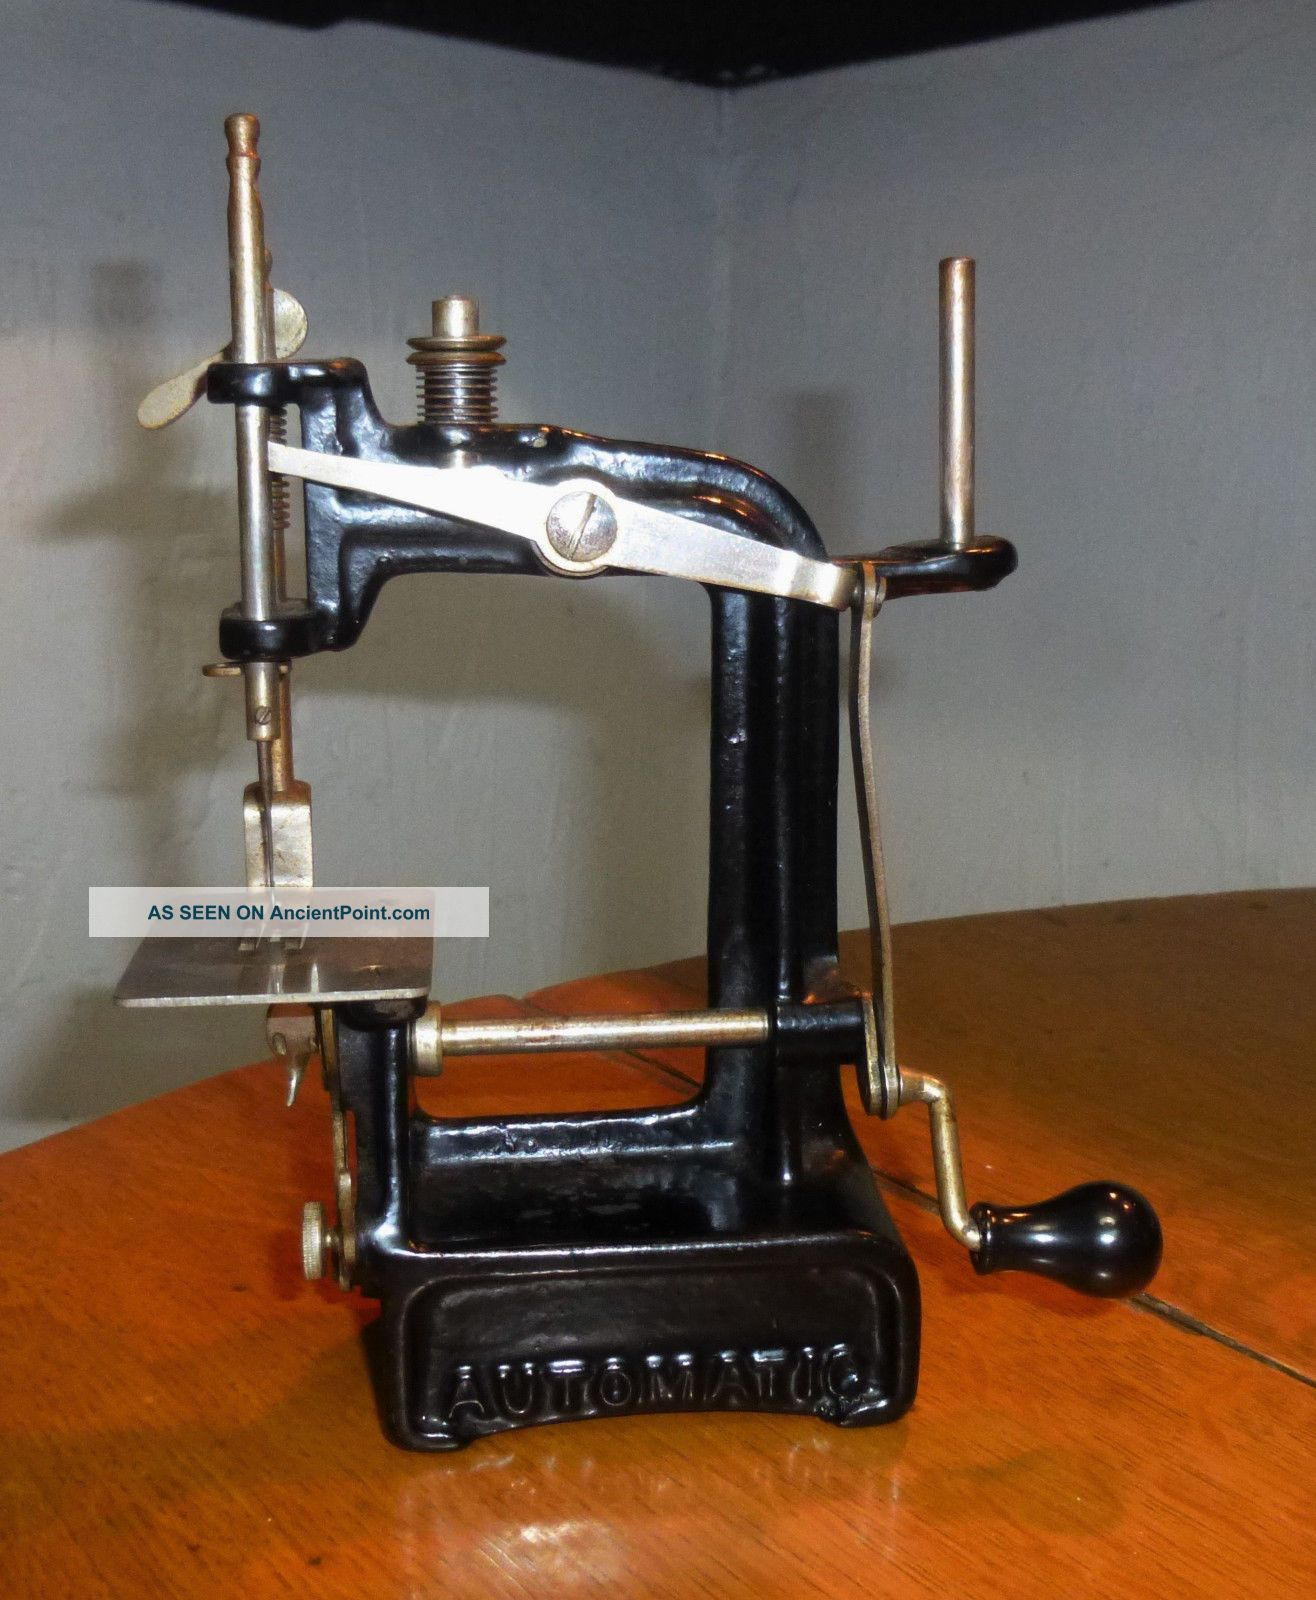 Vintage Smith & Egge Automatic Miniature Toy Cast Iron Hand Sewing Machine - 1897 Sewing Machines photo